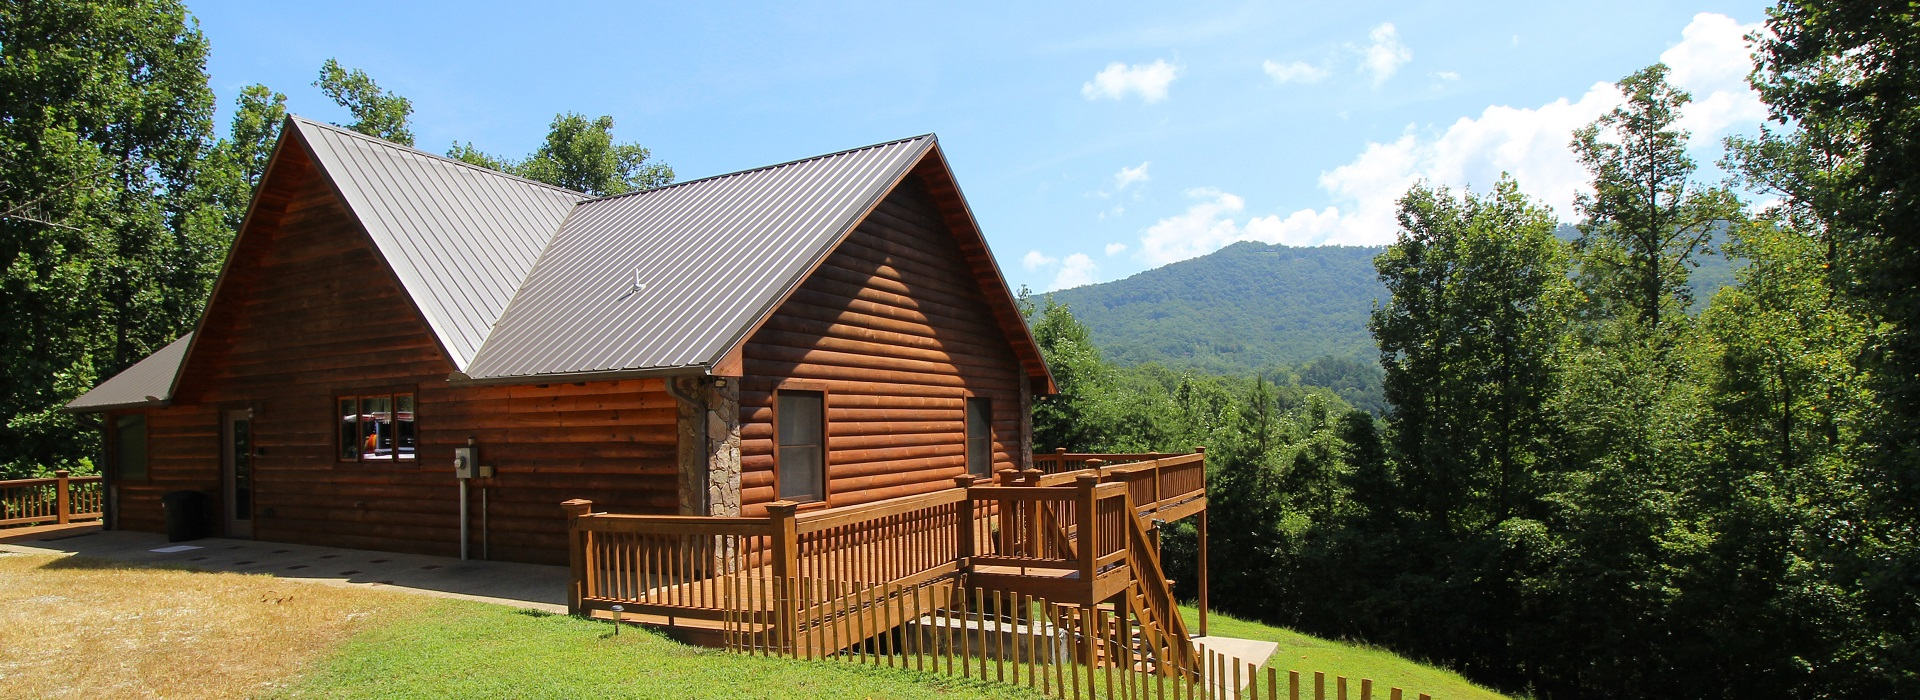 from fire the cabins vrbo view lakehouse cabin rustic secluded ny rentals house of vintage pit retreat